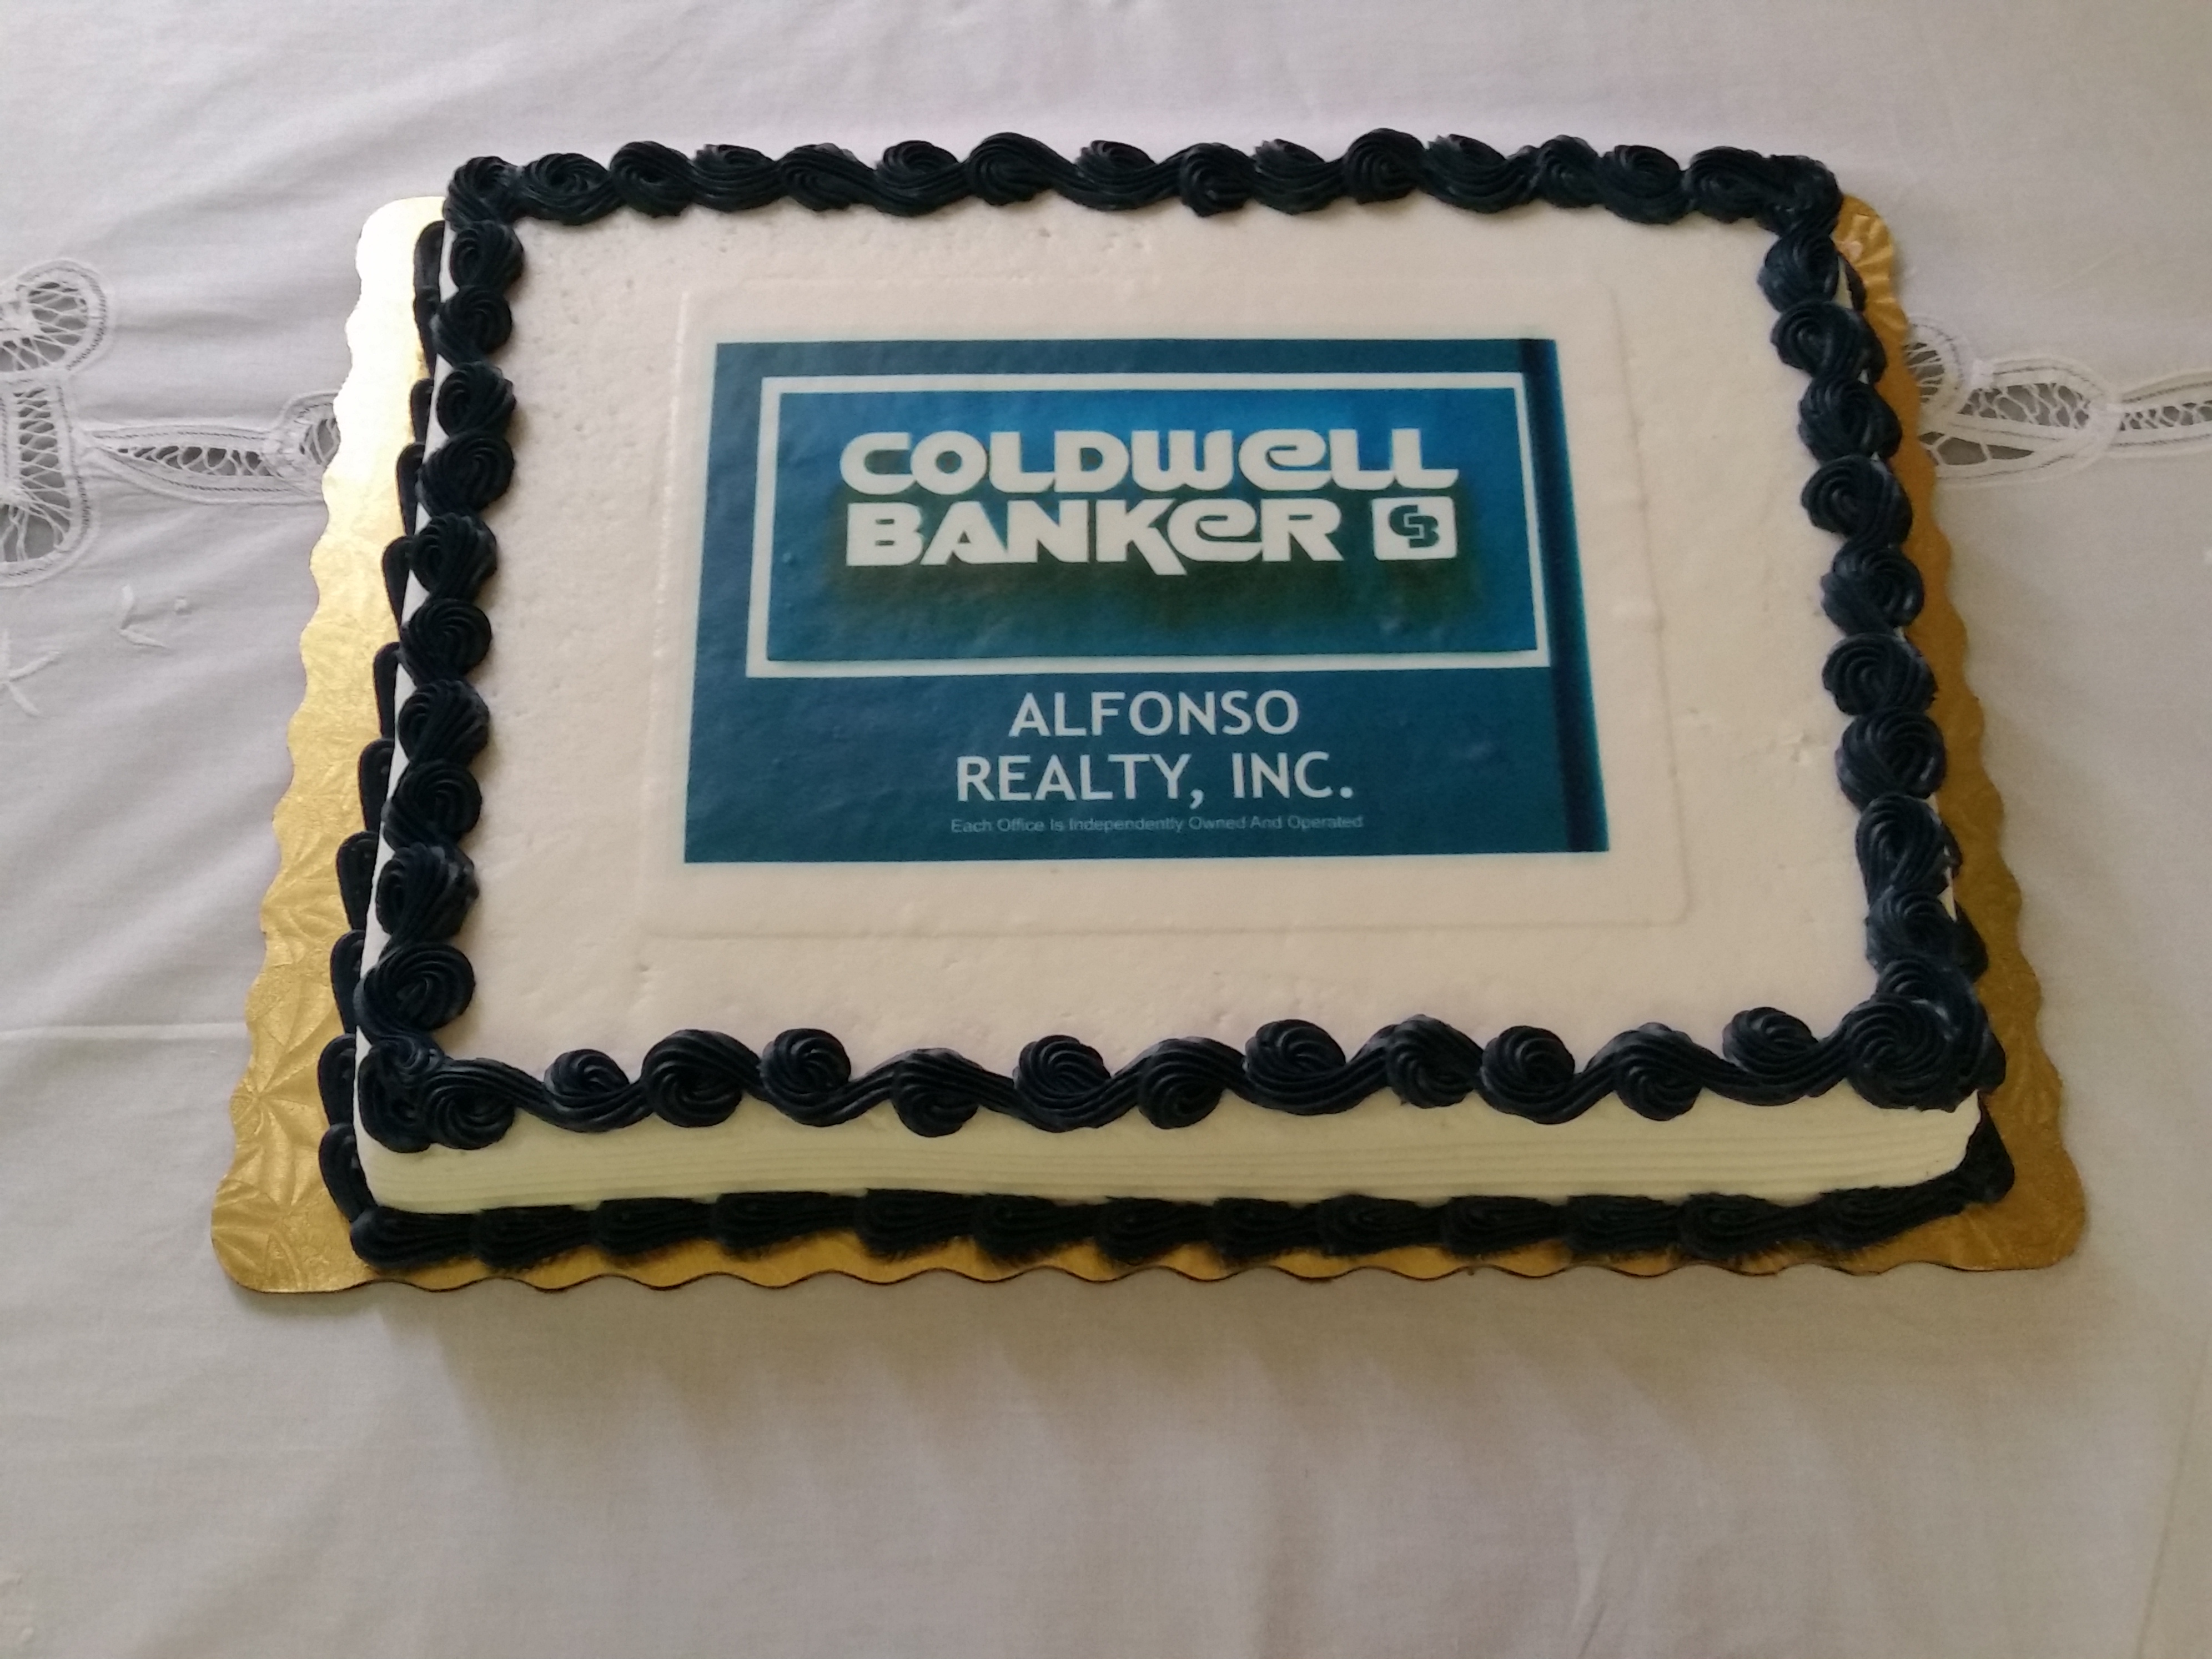 Coldwell Banker Diamondhead Opening